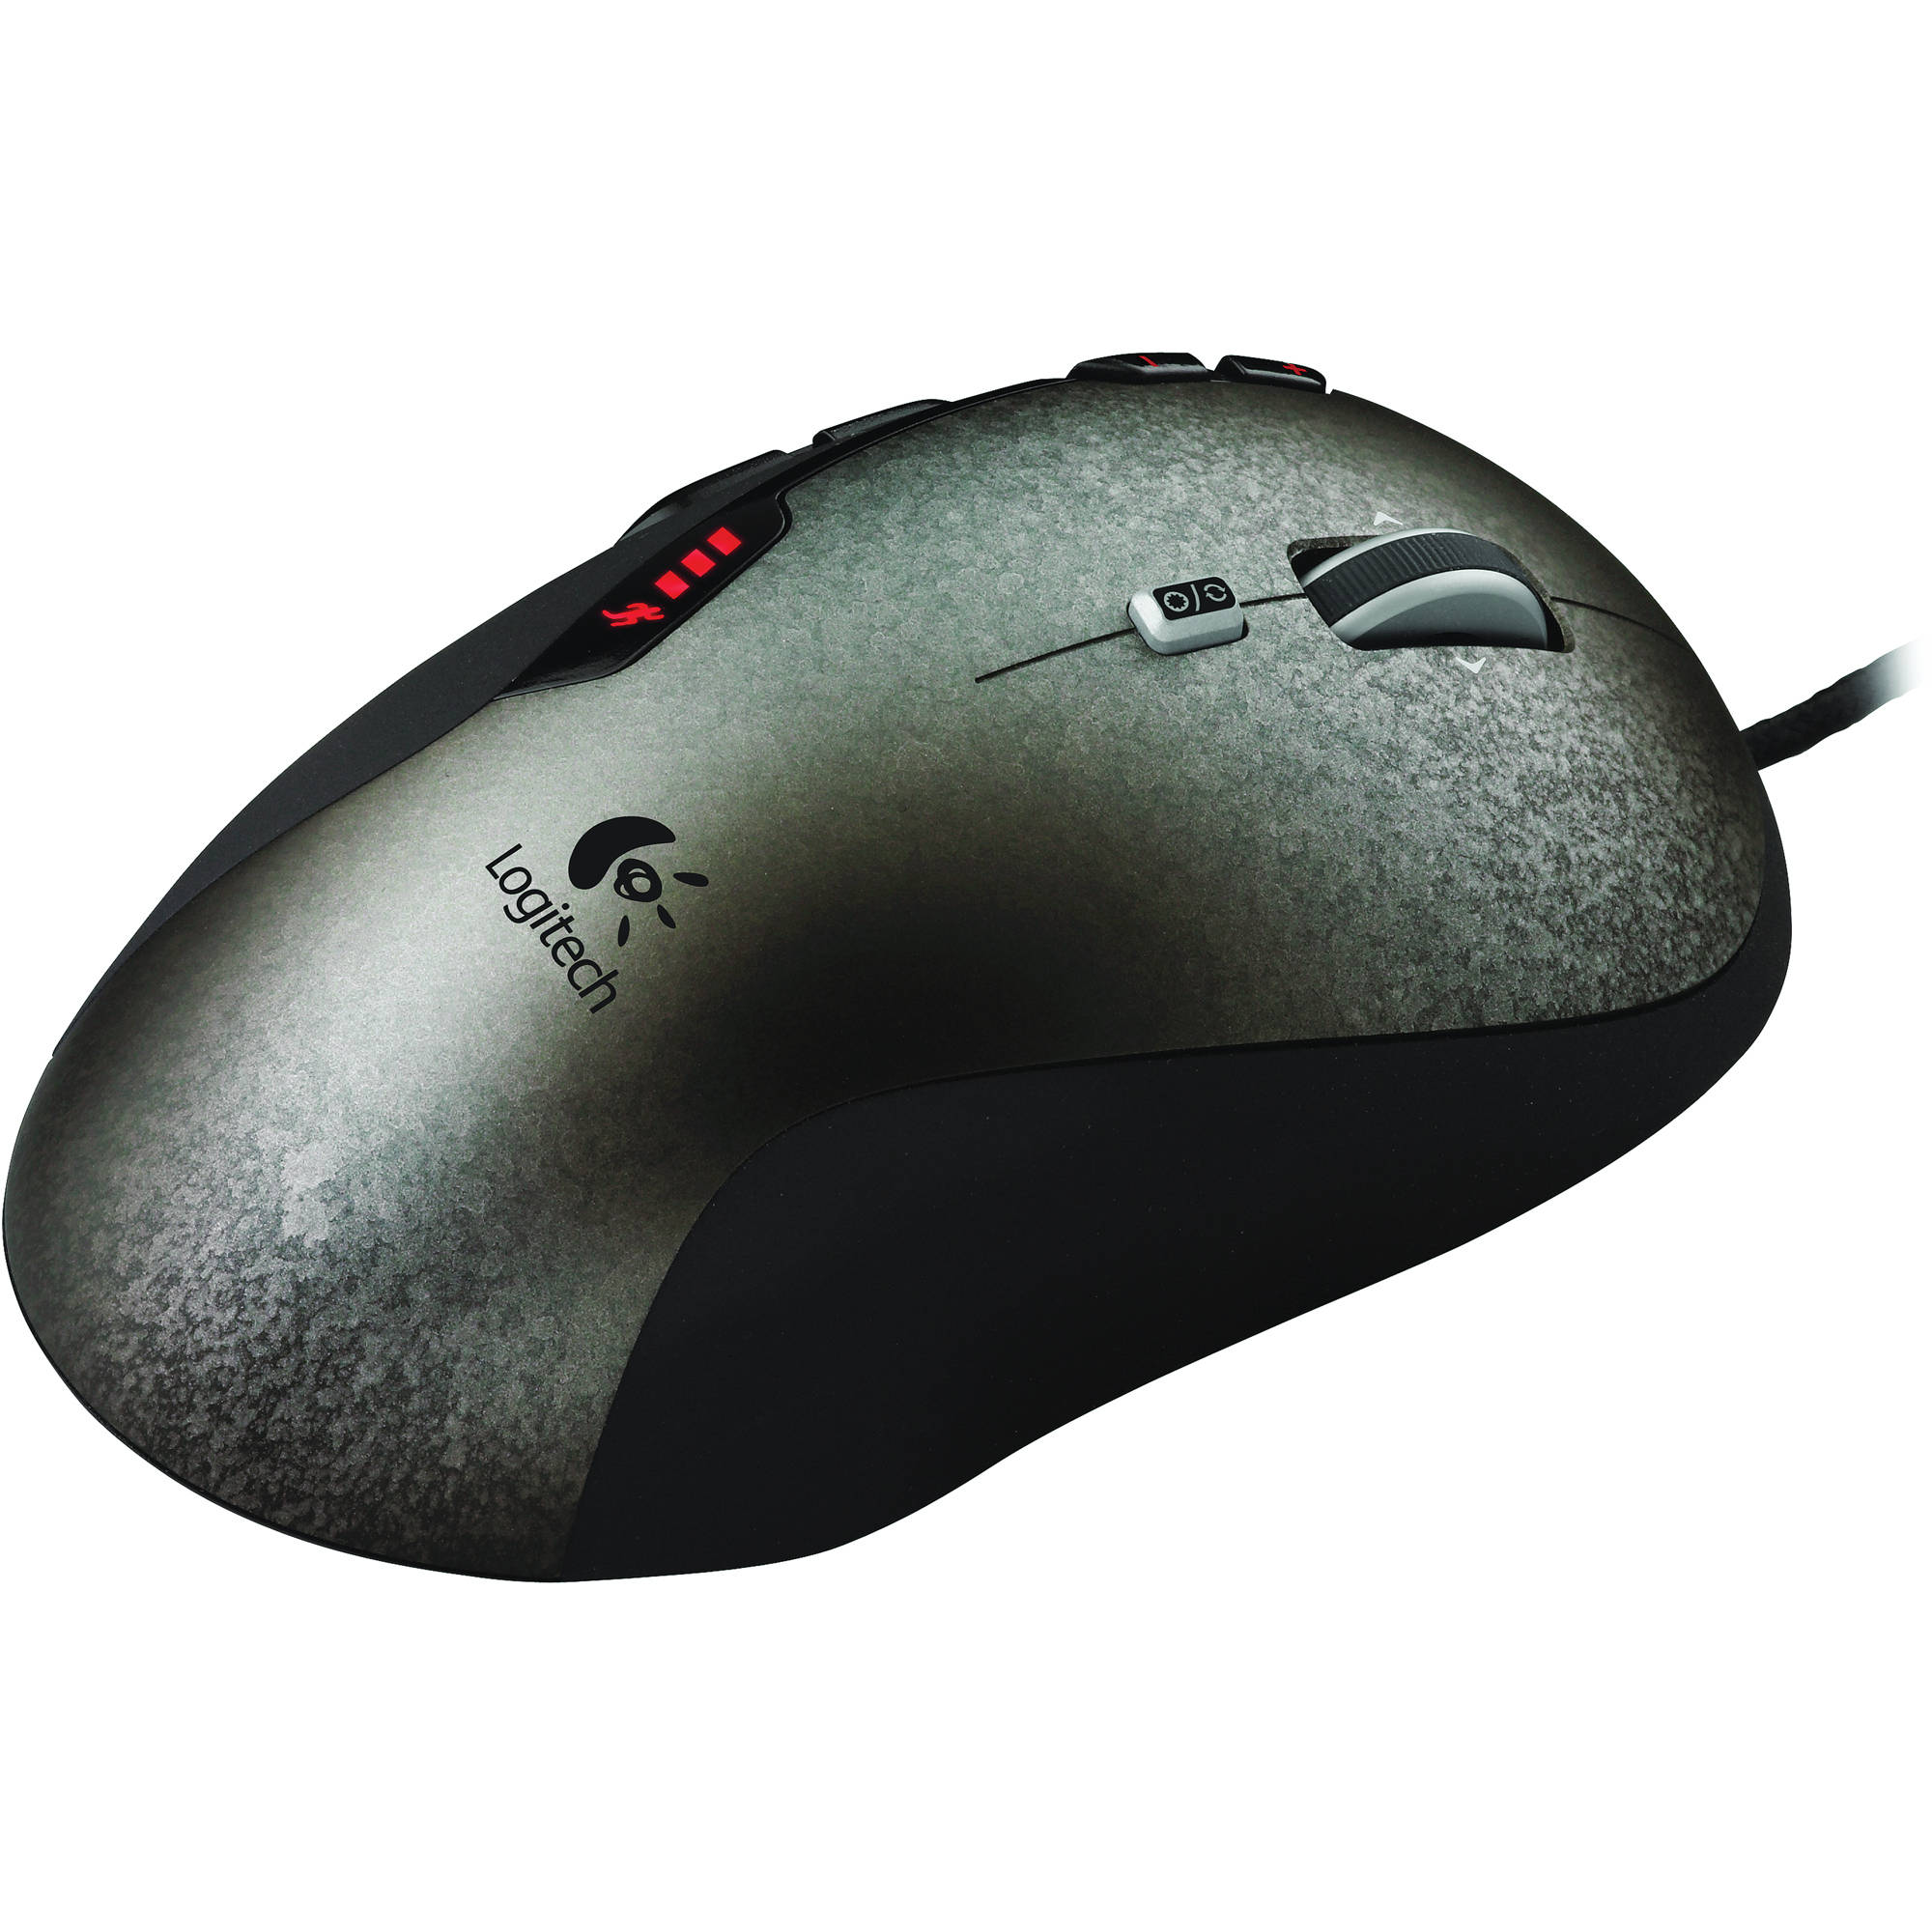 Logitech 910-003924 GAMING MOUSE G500